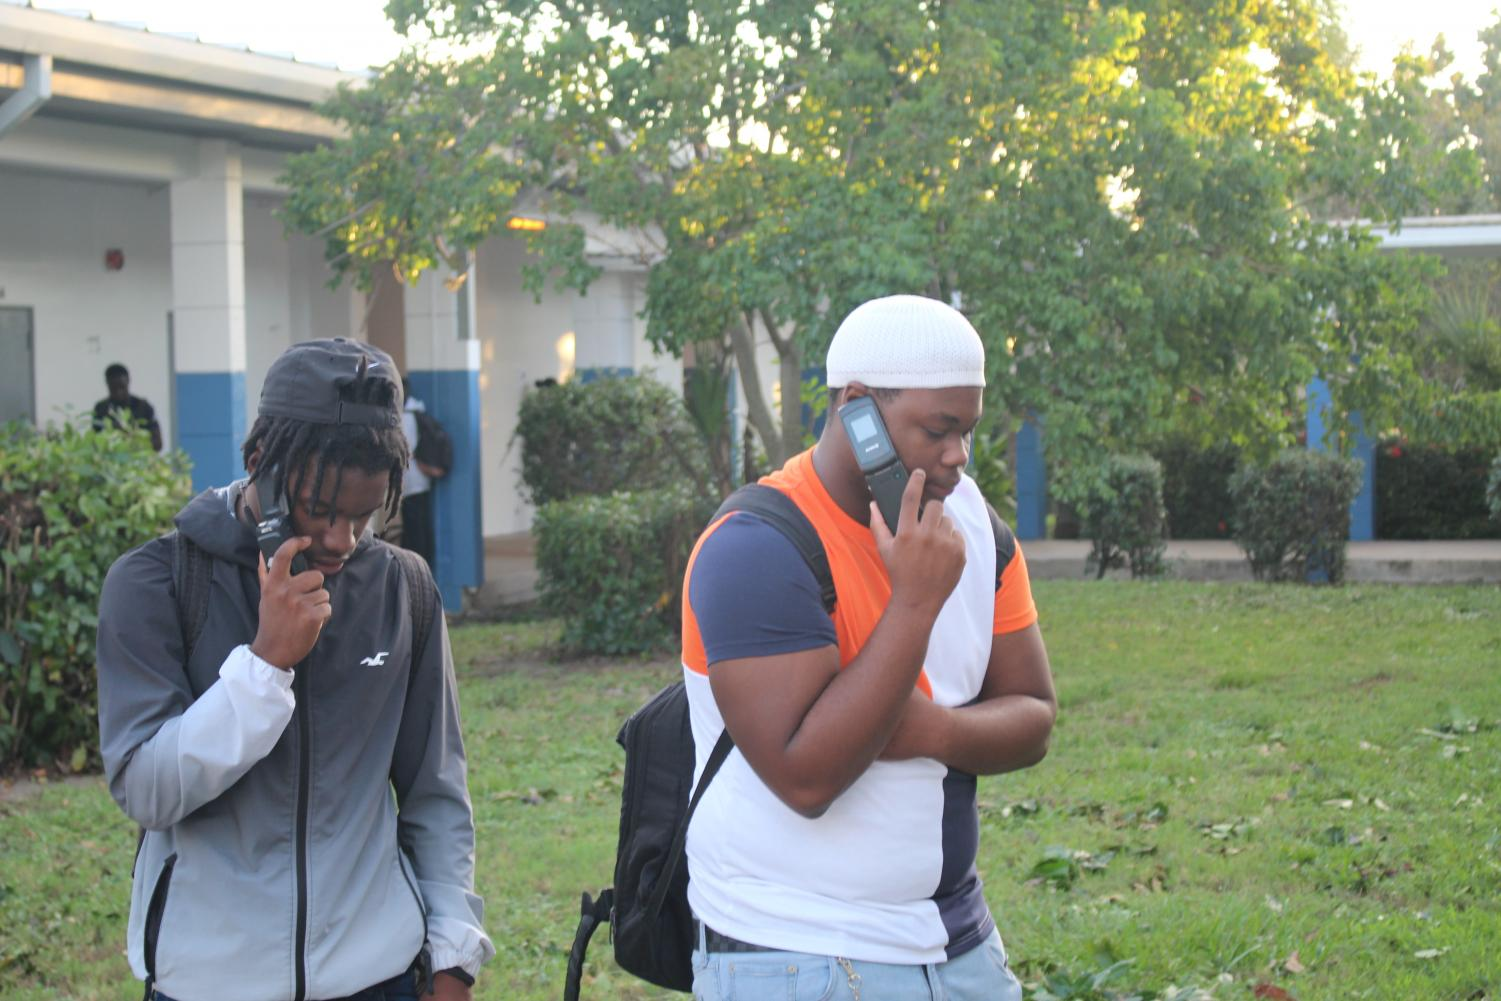 BLAST FROM THE PAST: Today at Inlet Grove it was a 90's throw back when  Maurice Law and Geovonni Wilson were using flip phones from the 90's .